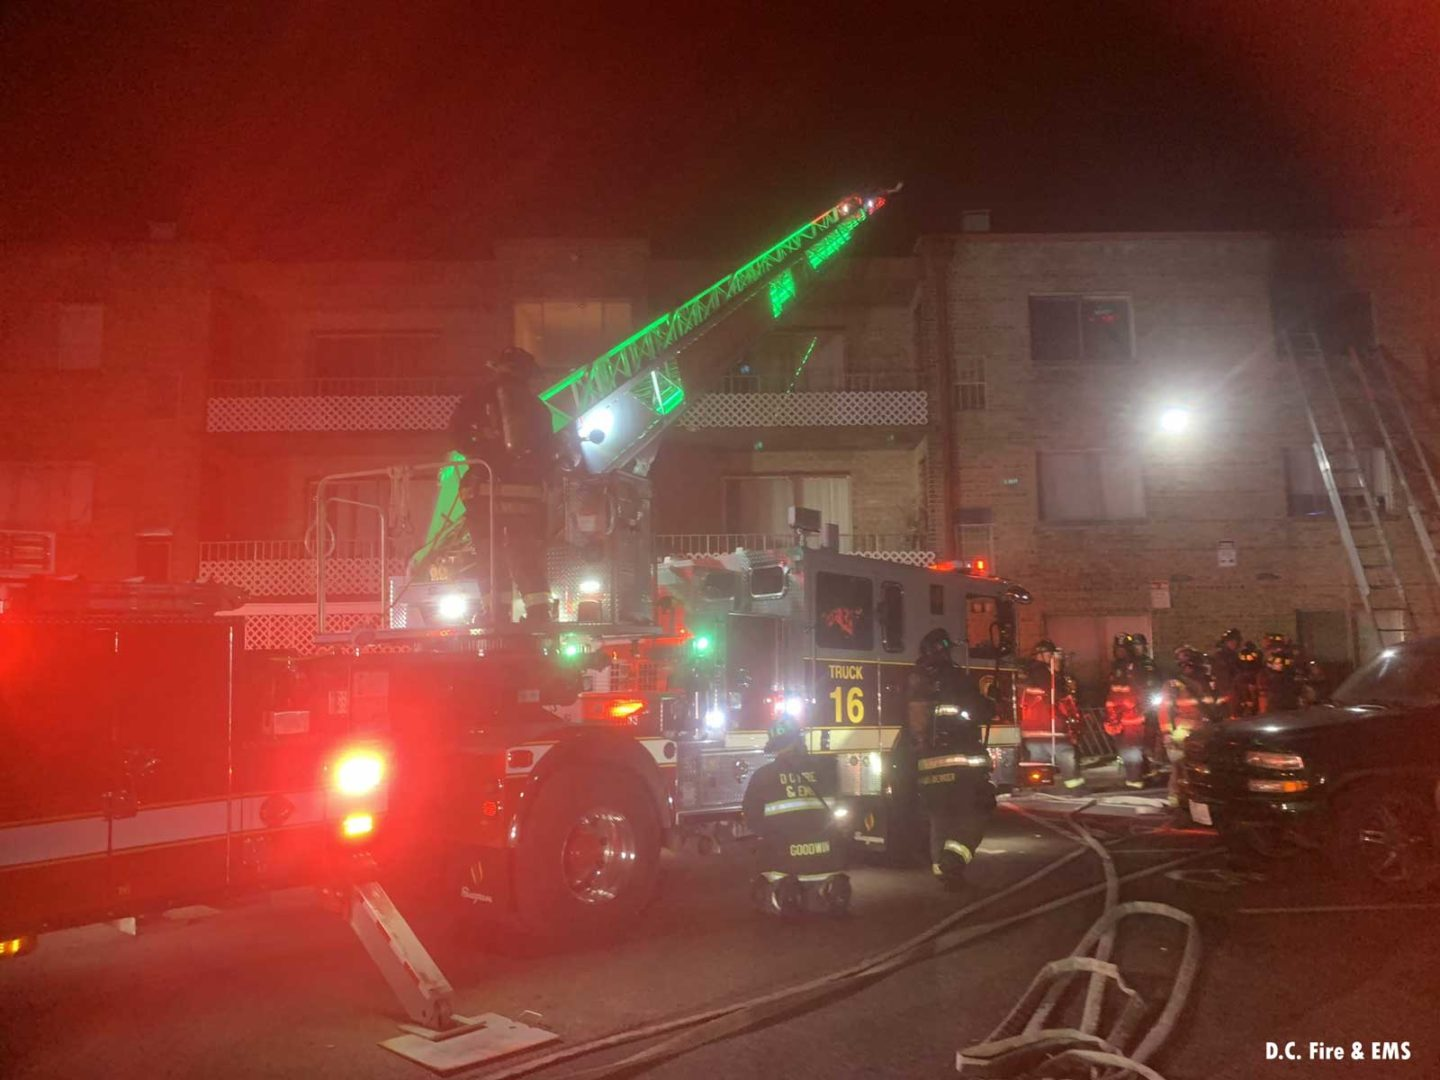 D.C. fire apparatus at the fire scene